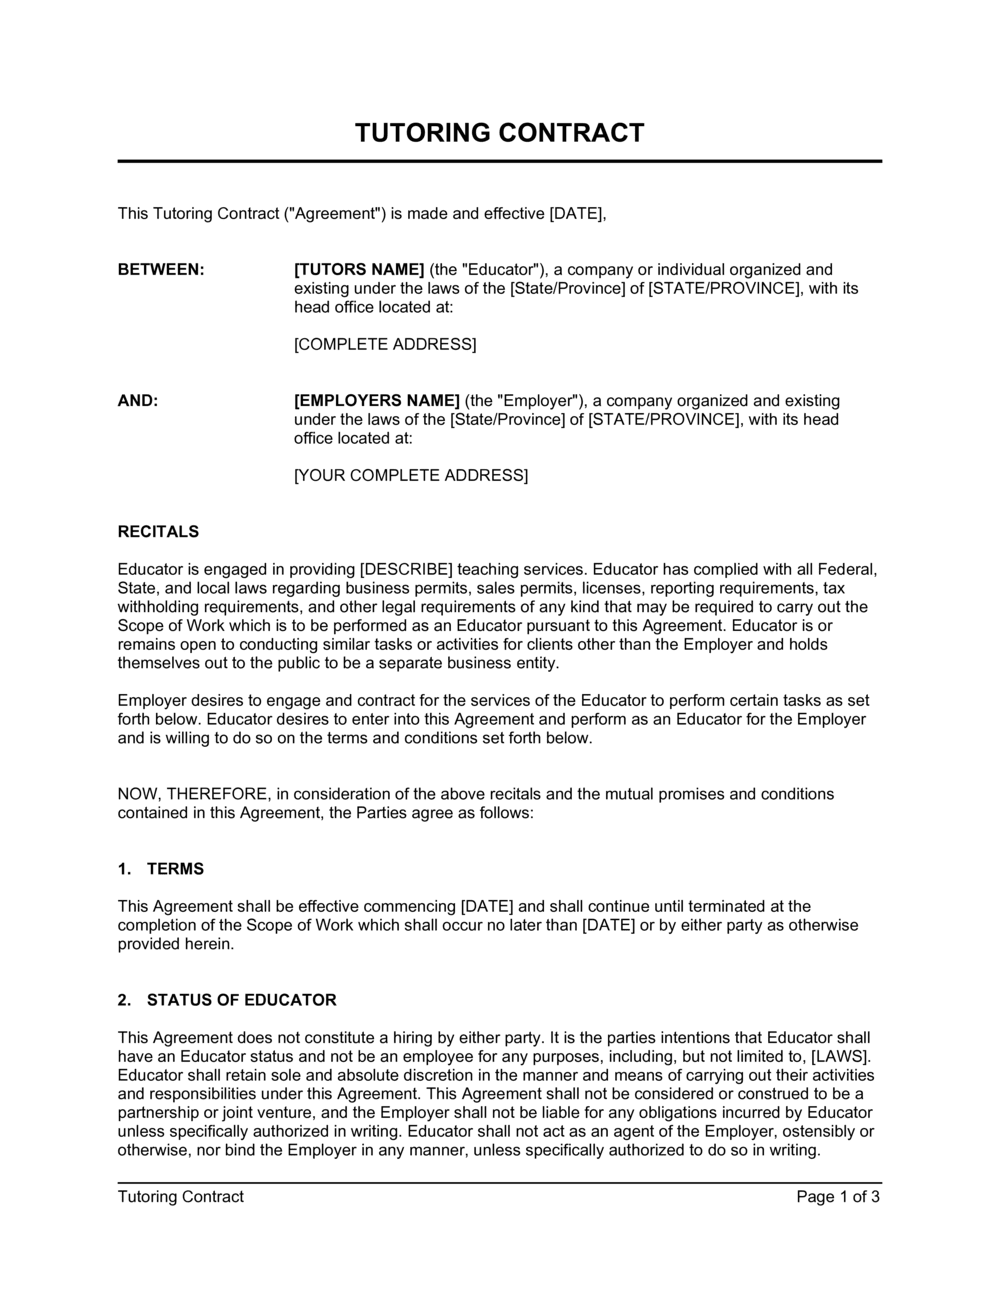 Business-in-a-Box's Tutoring Contract Template